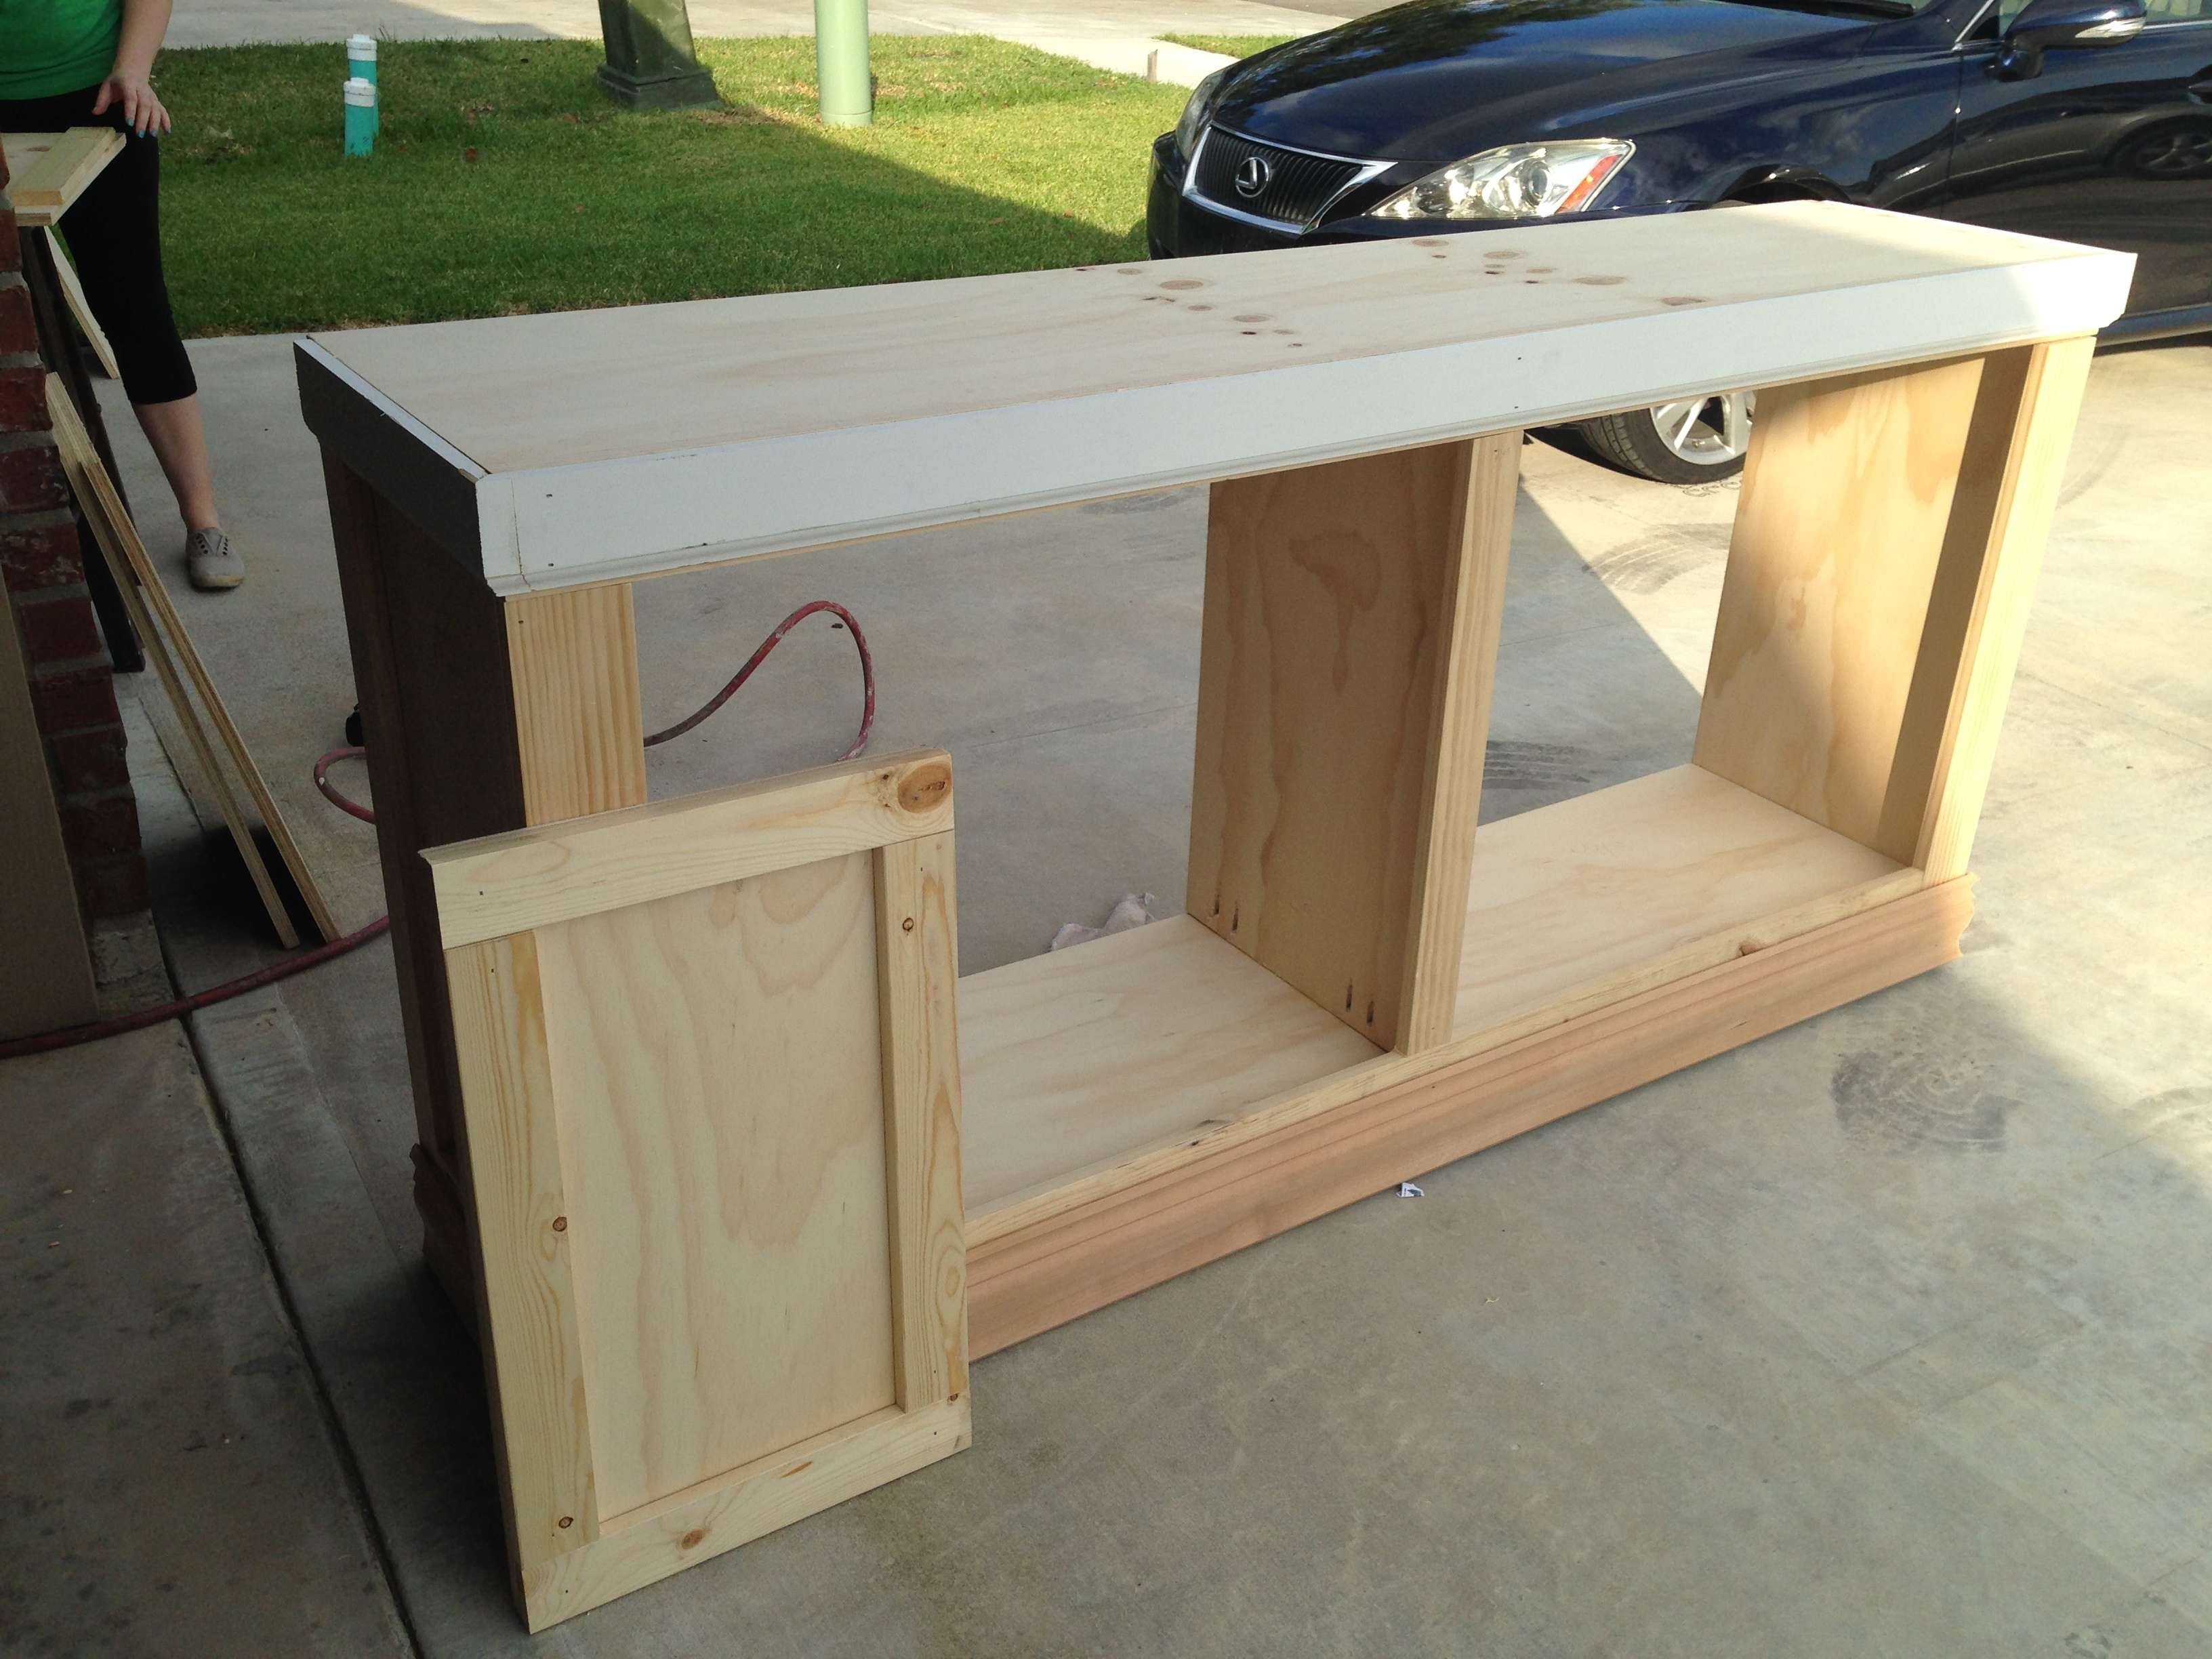 Diy Sideboard | The Sweet Life Intended For Diy Sideboards (View 12 of 20)